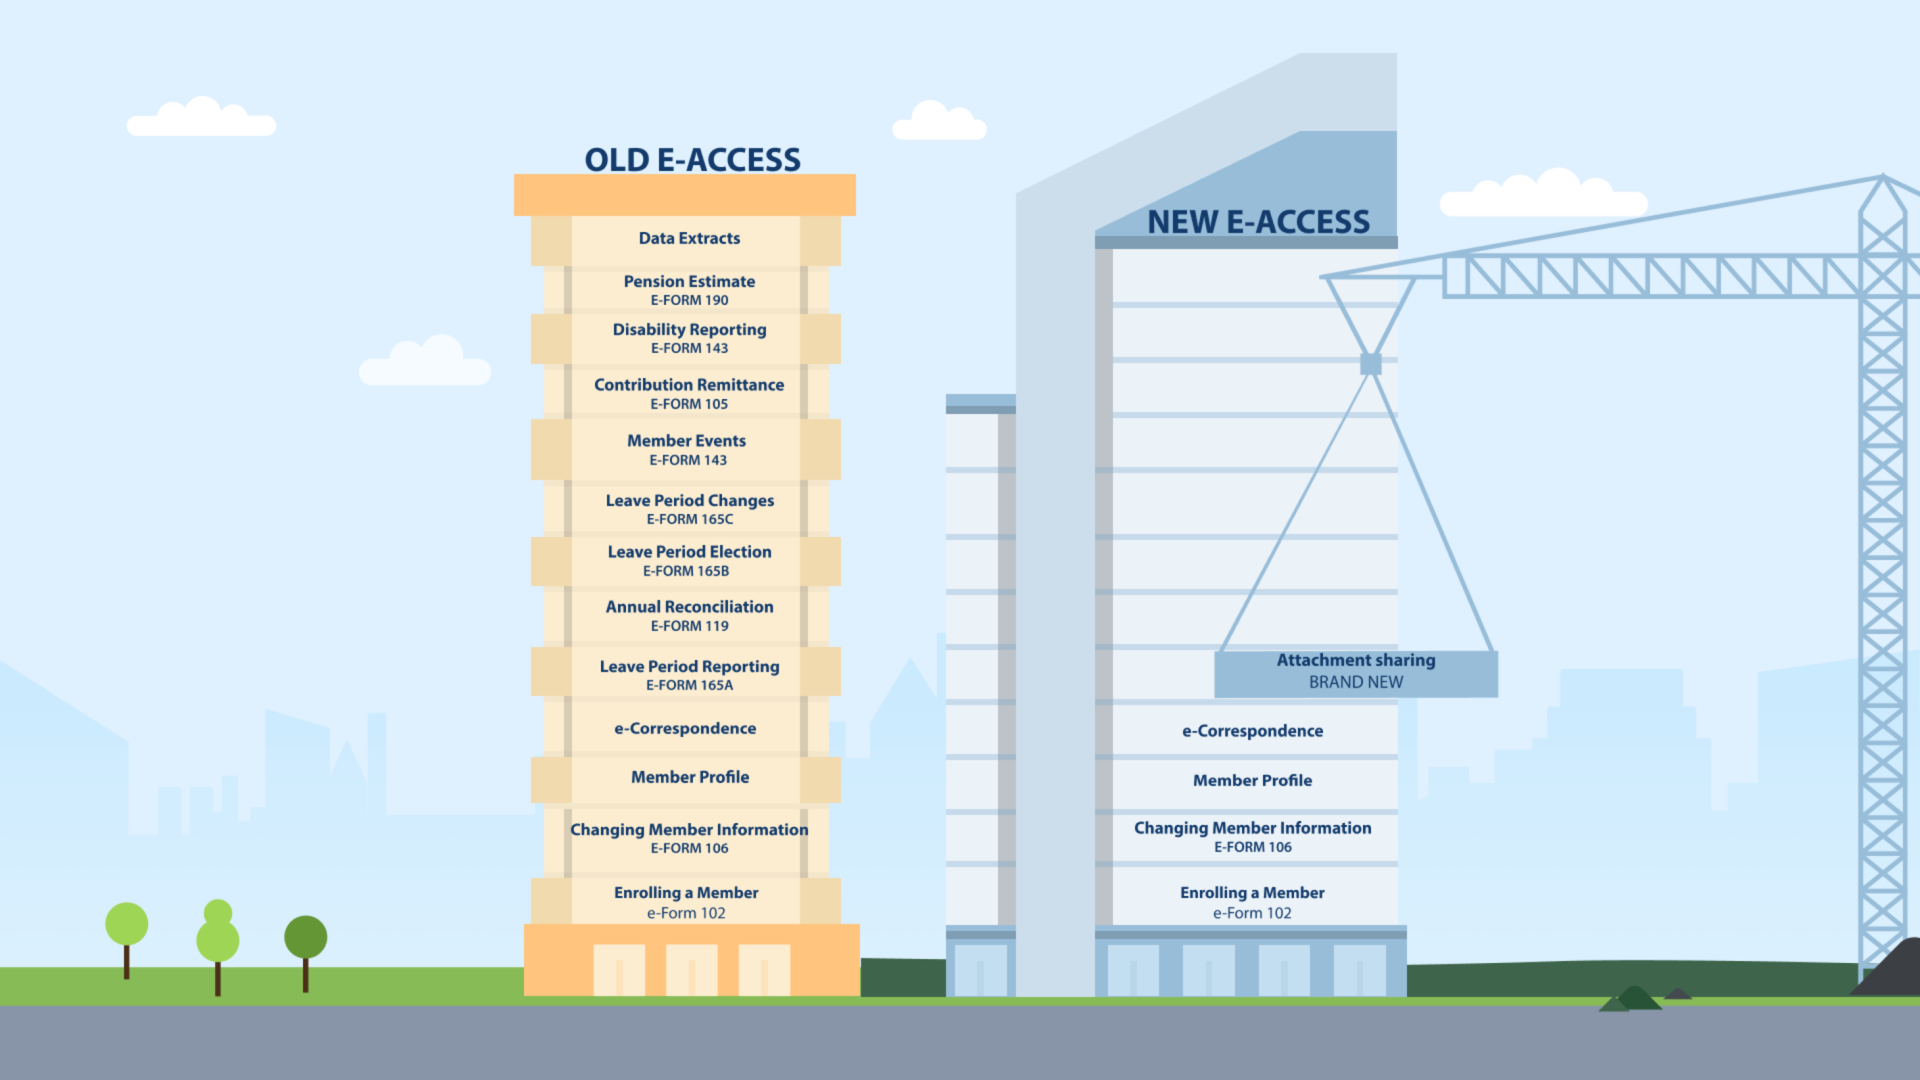 Graphic to show the progress of the development of the new e-access system.